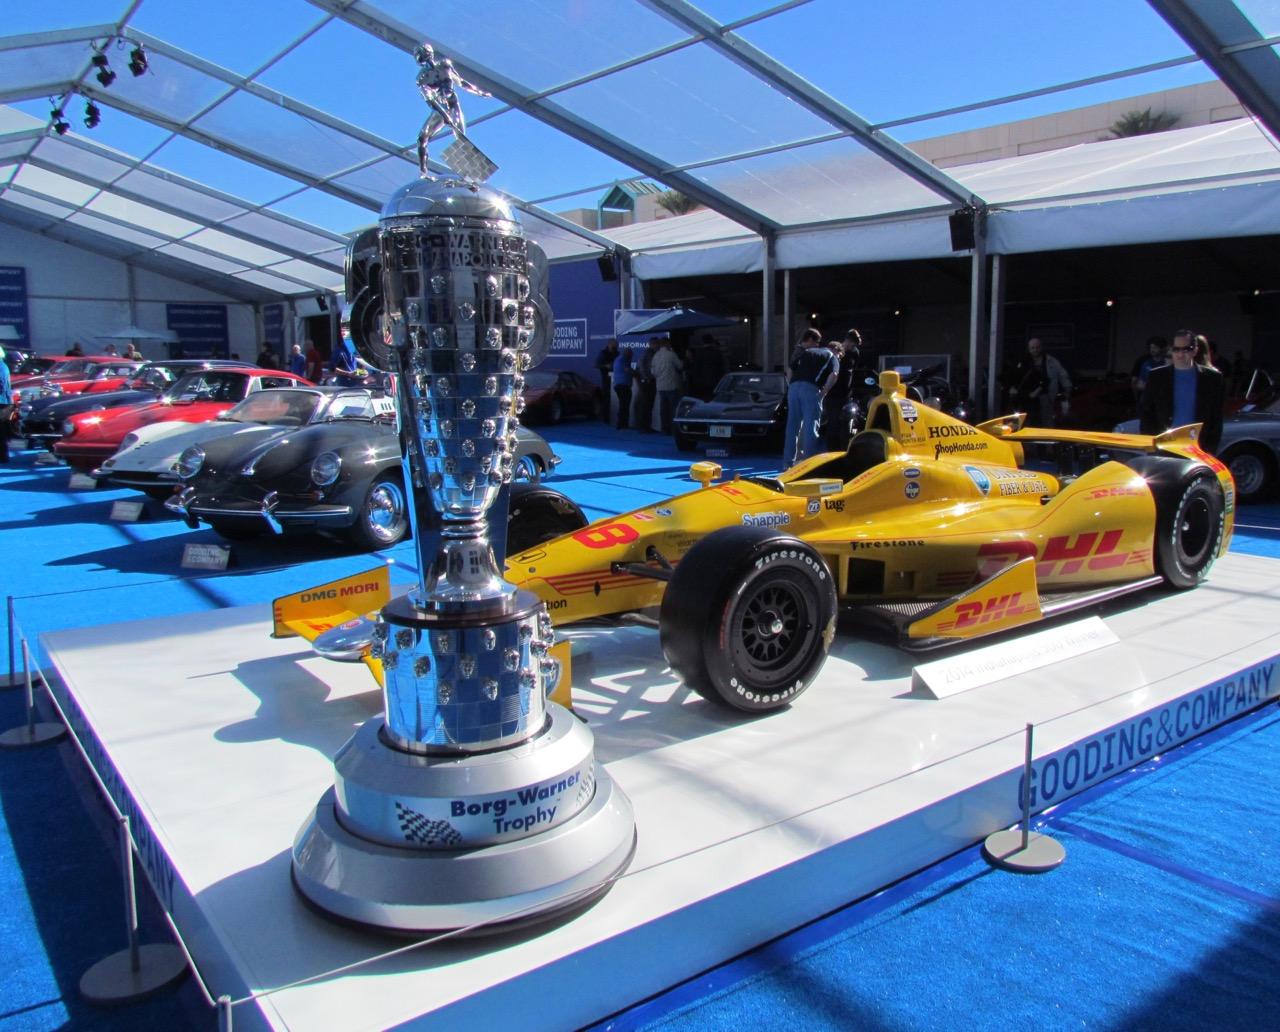 Was Gooding the wrong venue to sell an Indy car?